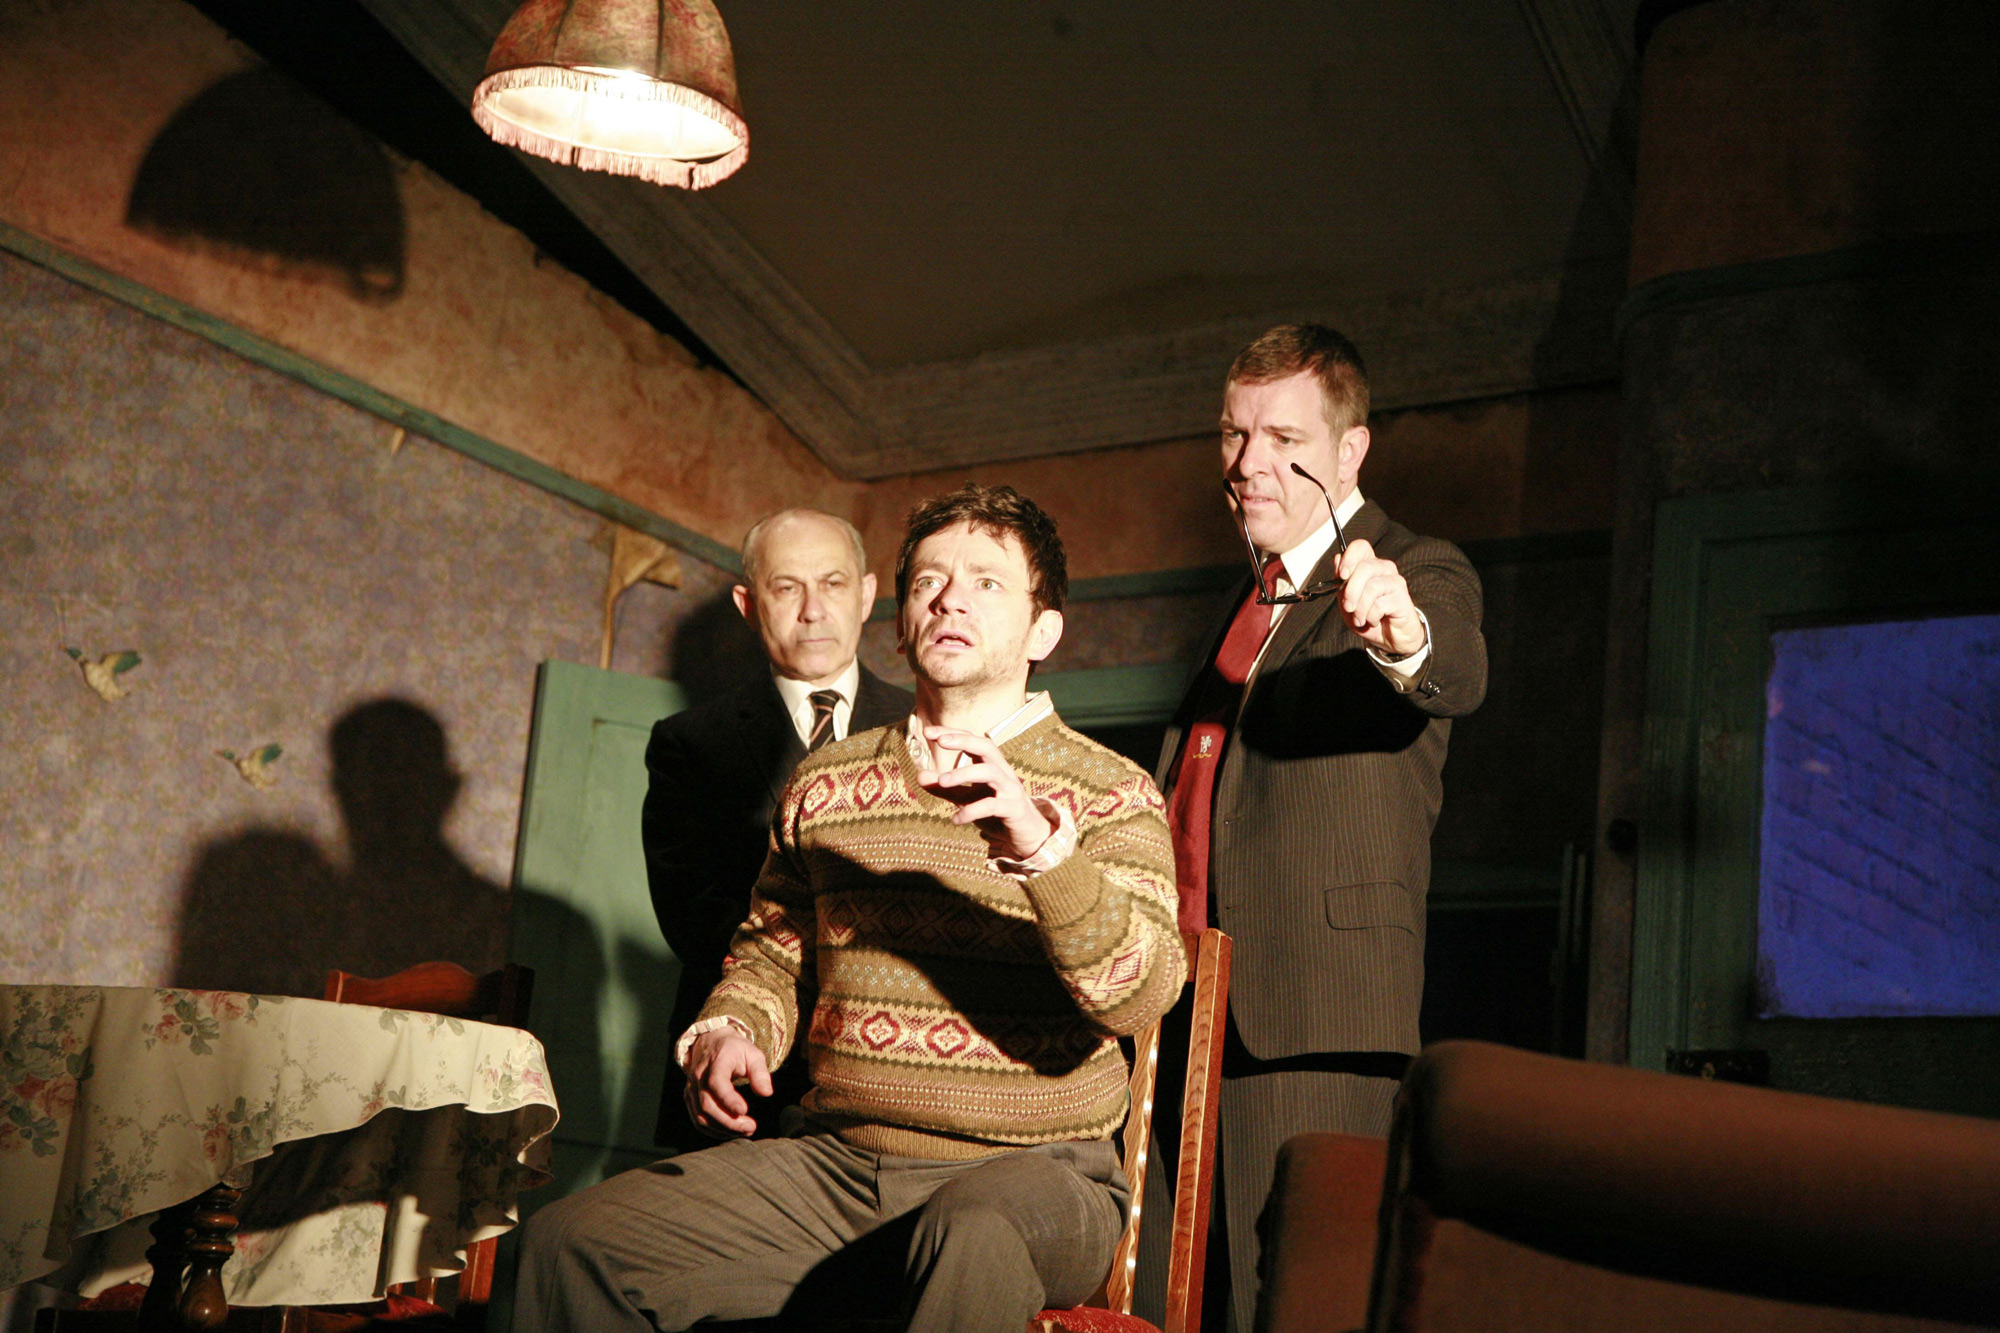 Photographs of The Birthday Party by Harold Pinter, 2008